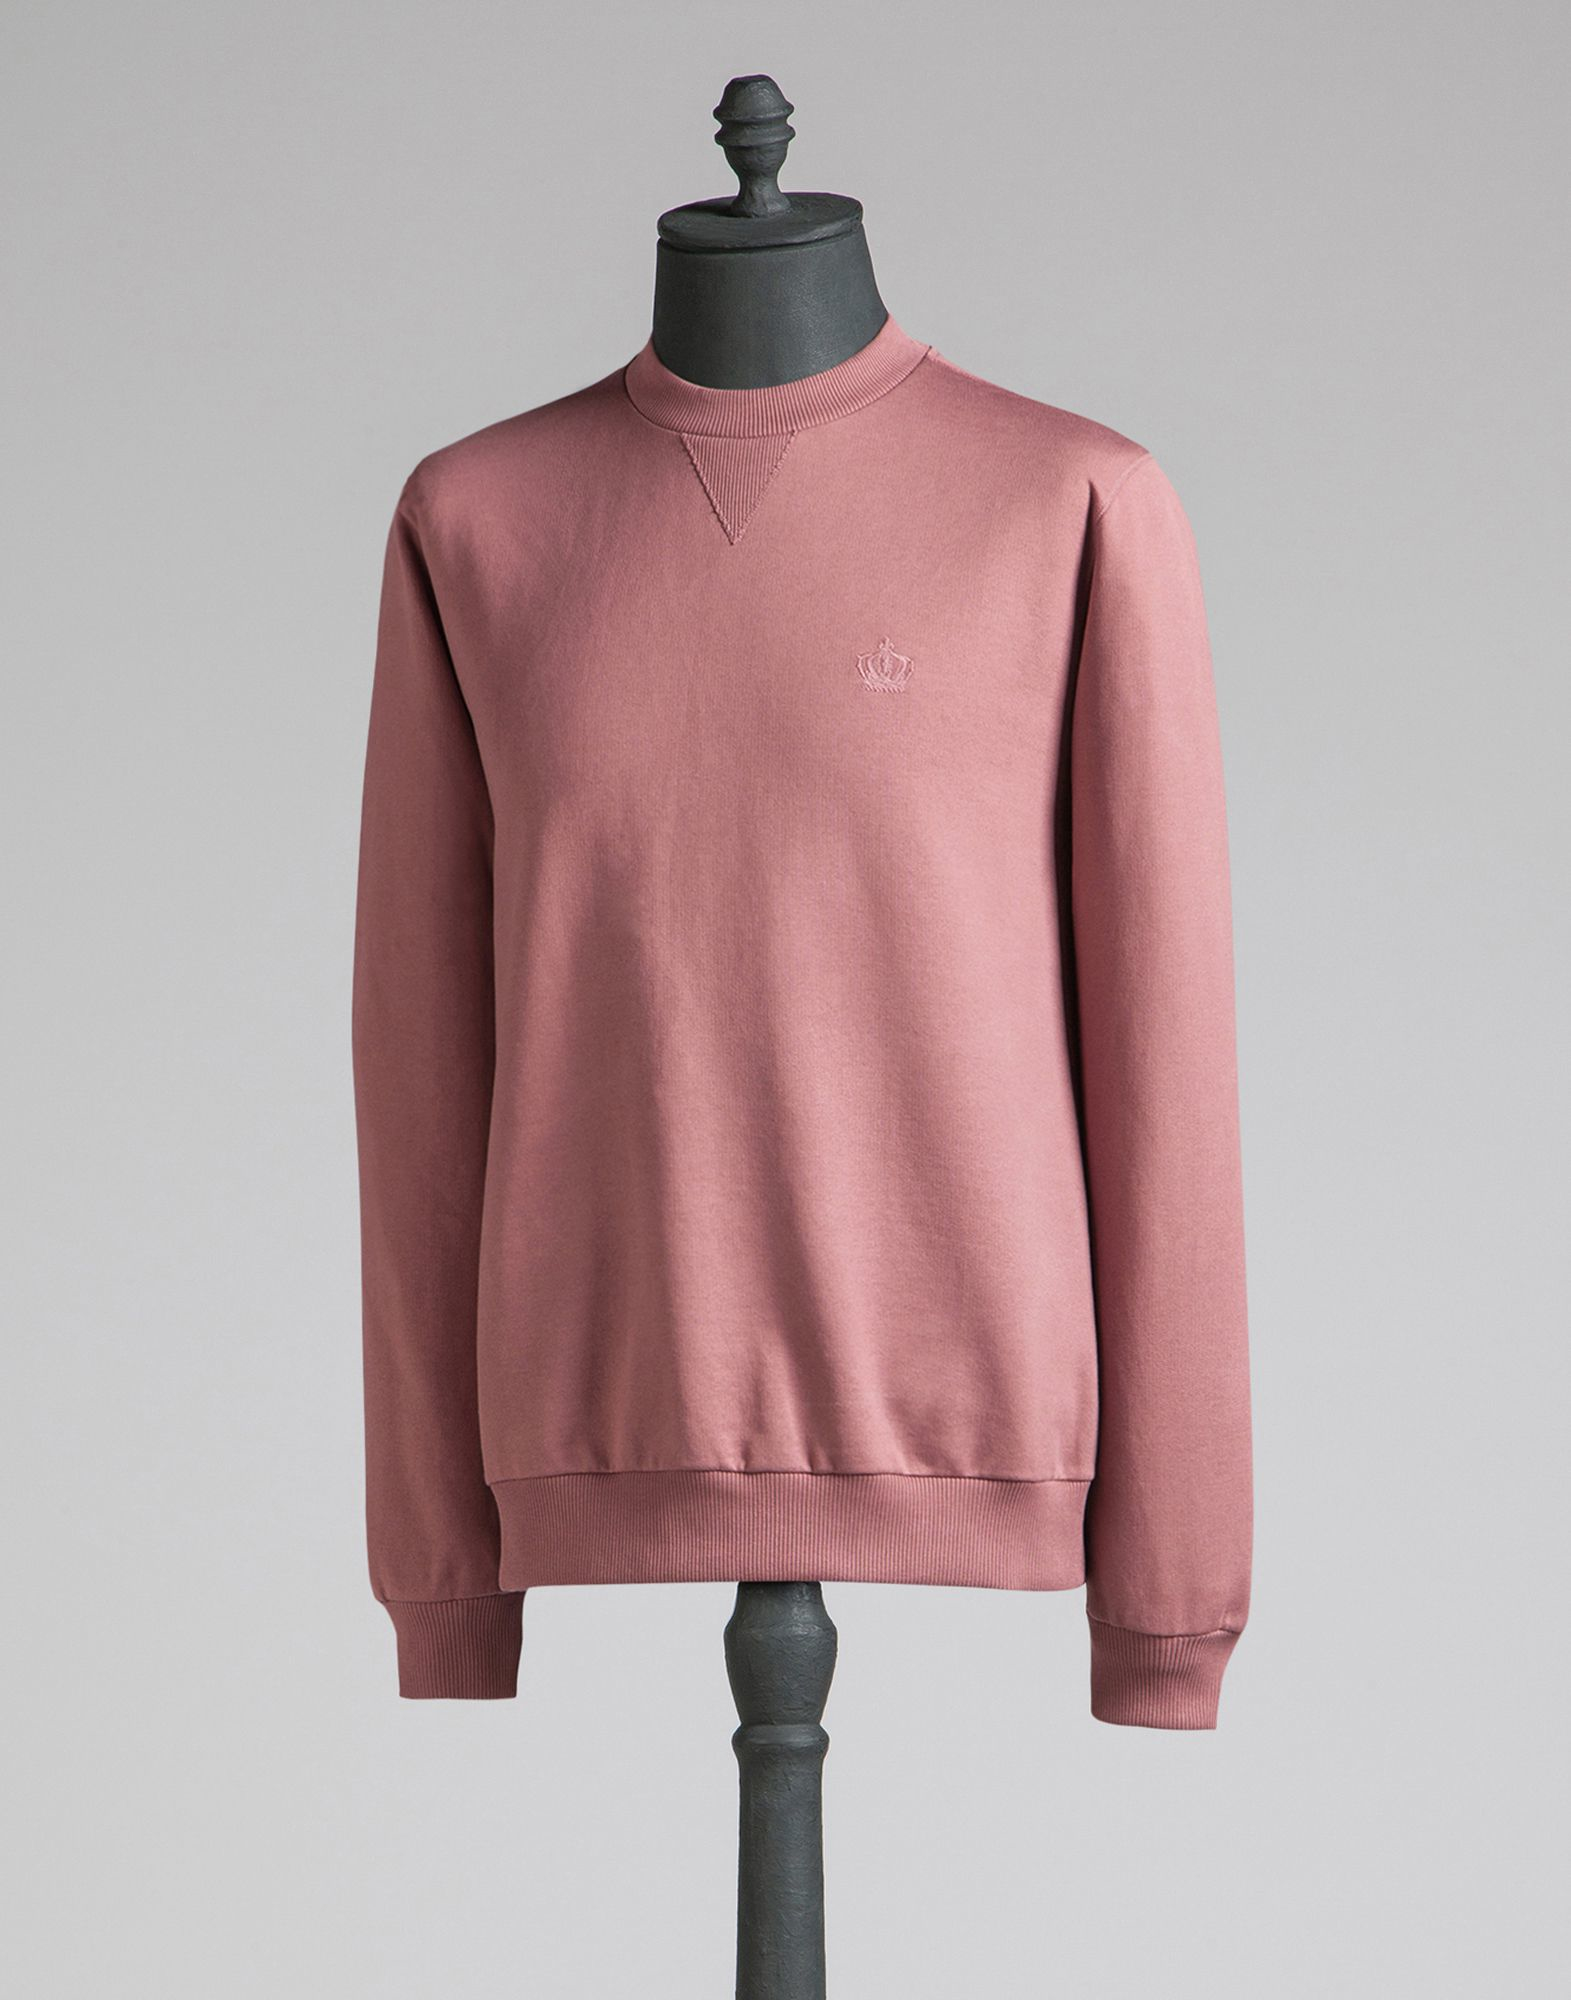 unique womens sweaters